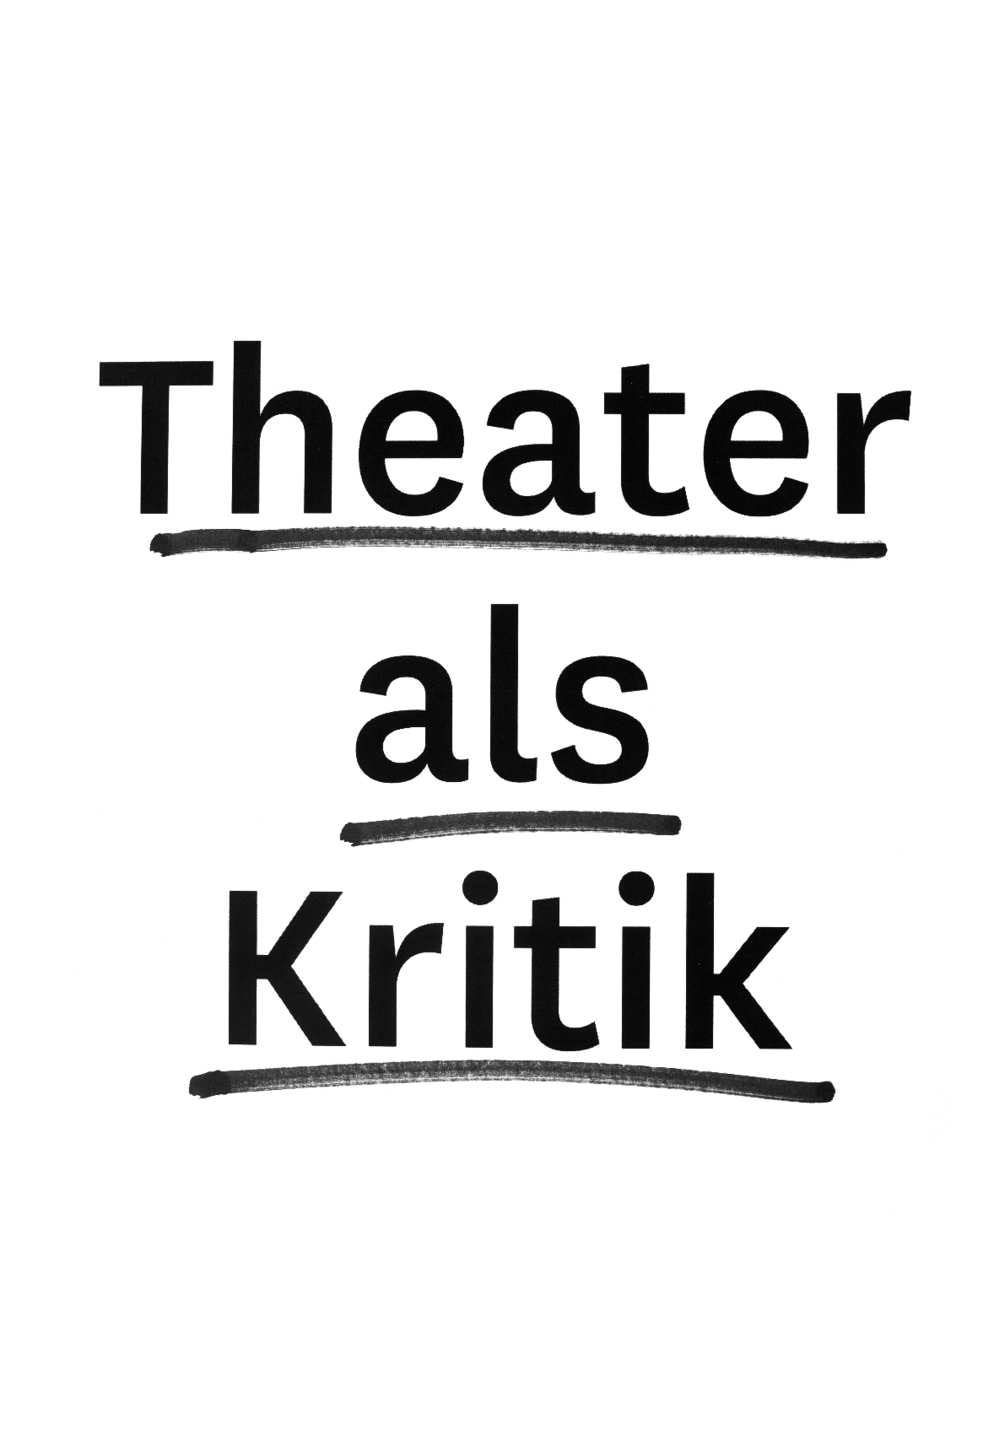 theater-as-critique-slip-04-1005x1435px